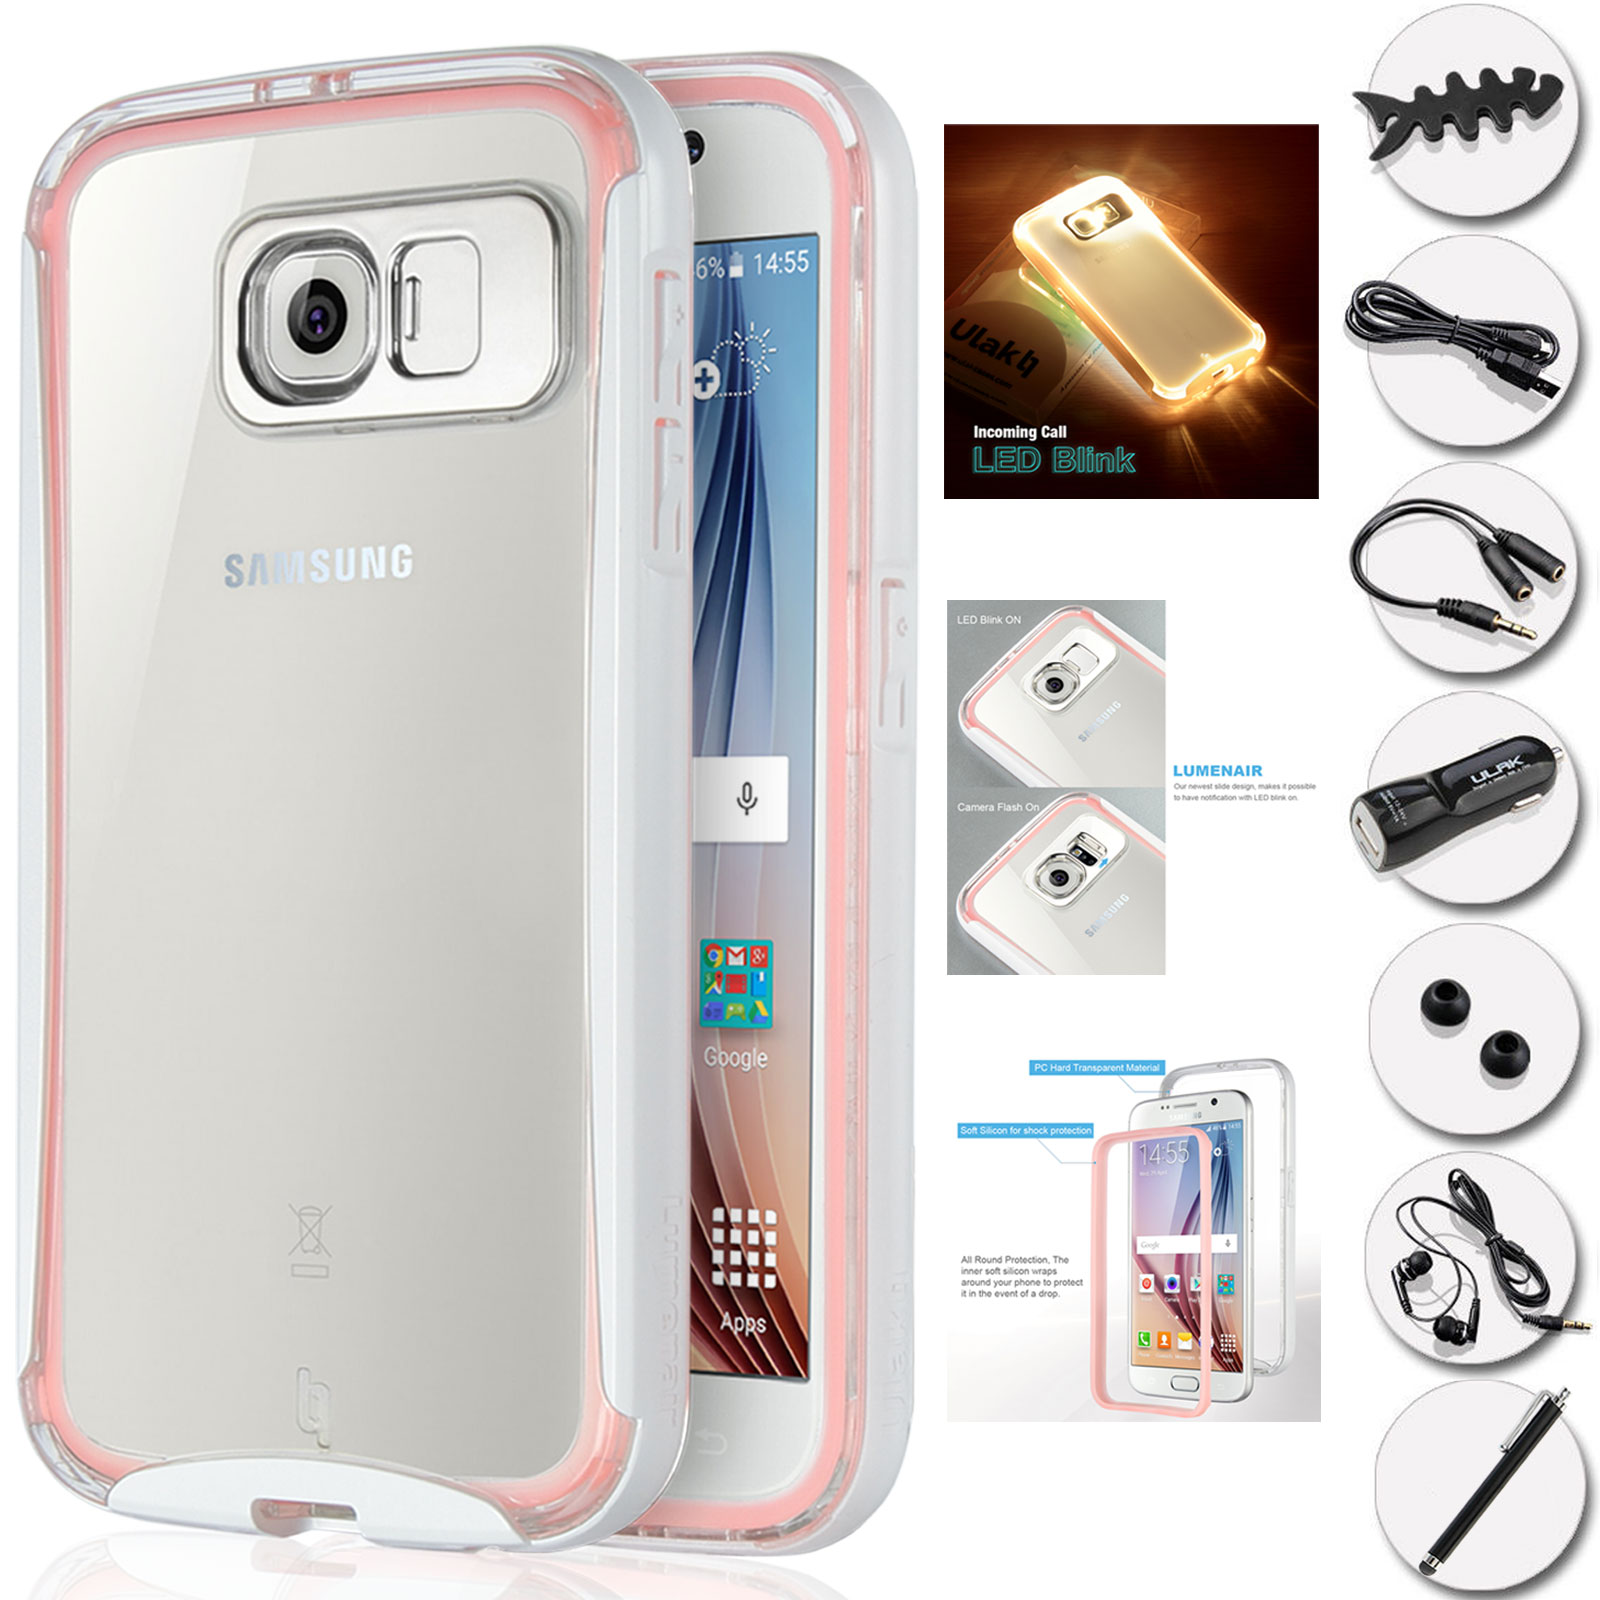 samsung galaxy s6 shock proof case